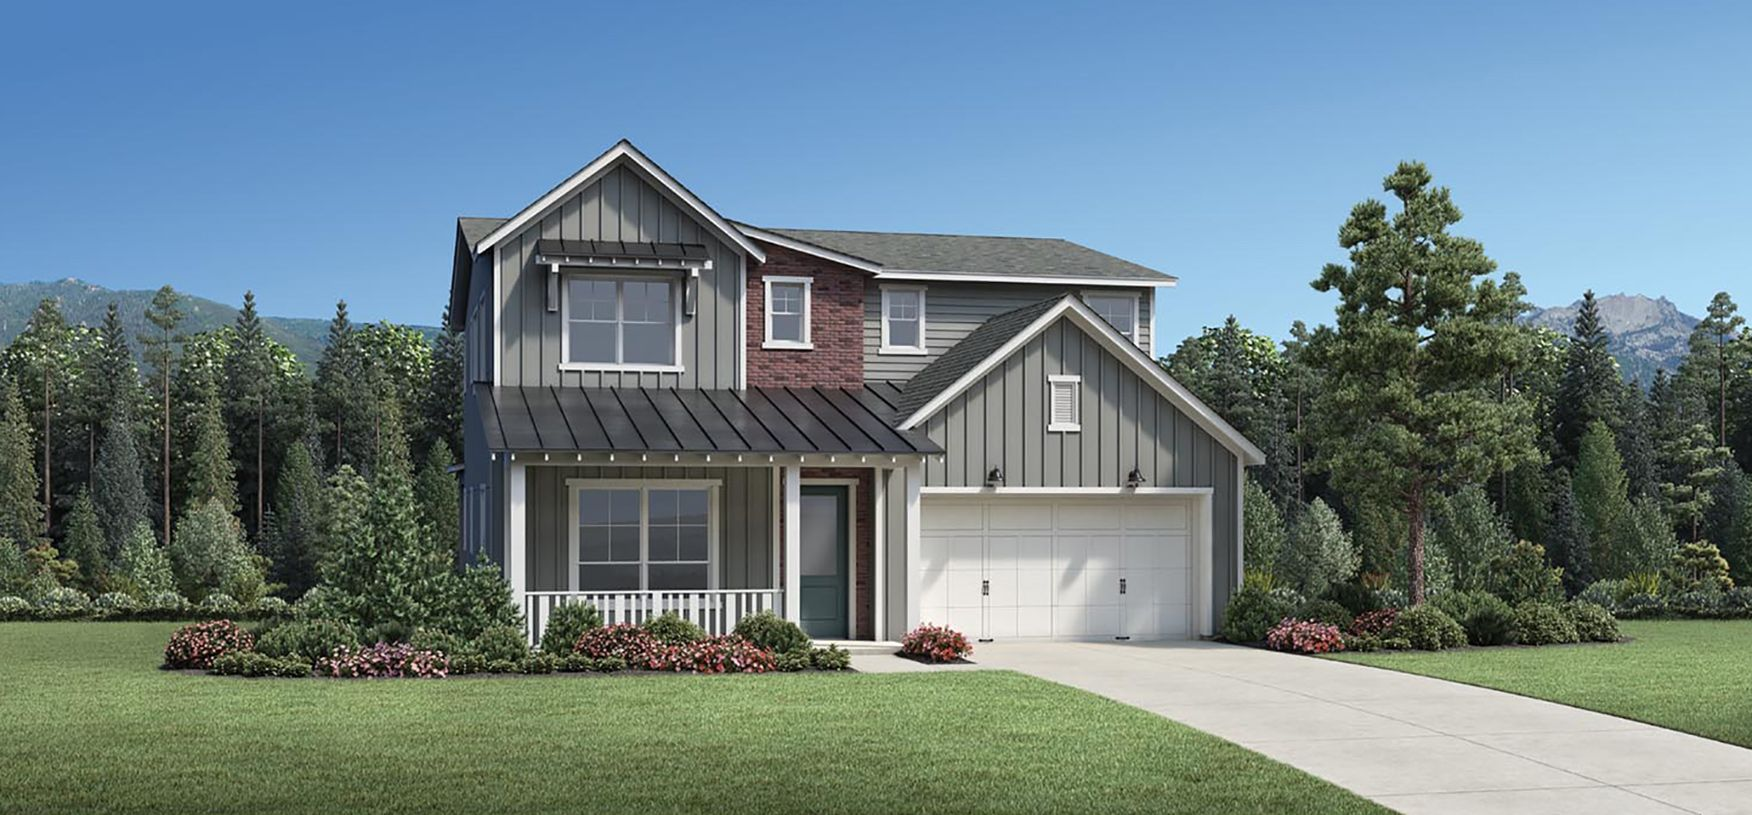 Single Family for Active at Toll Brothers At Edelweiss - Cutler 14666 South Silver Blossom Way Draper, Utah 84020 United States